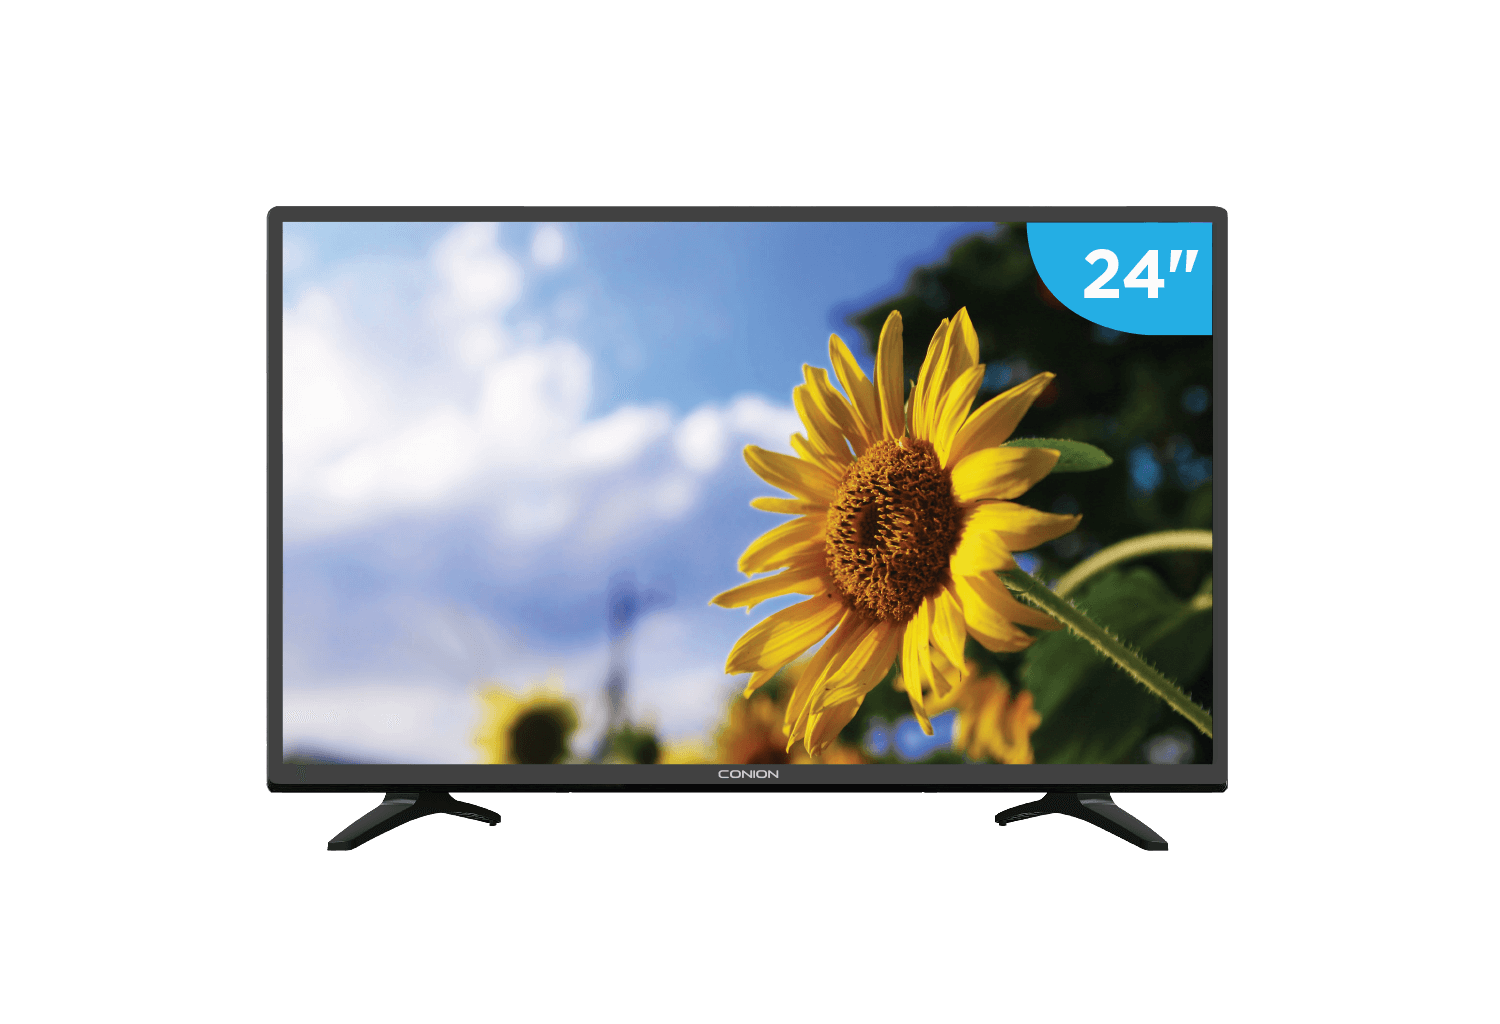 conion 24dn4 s led television best electronics